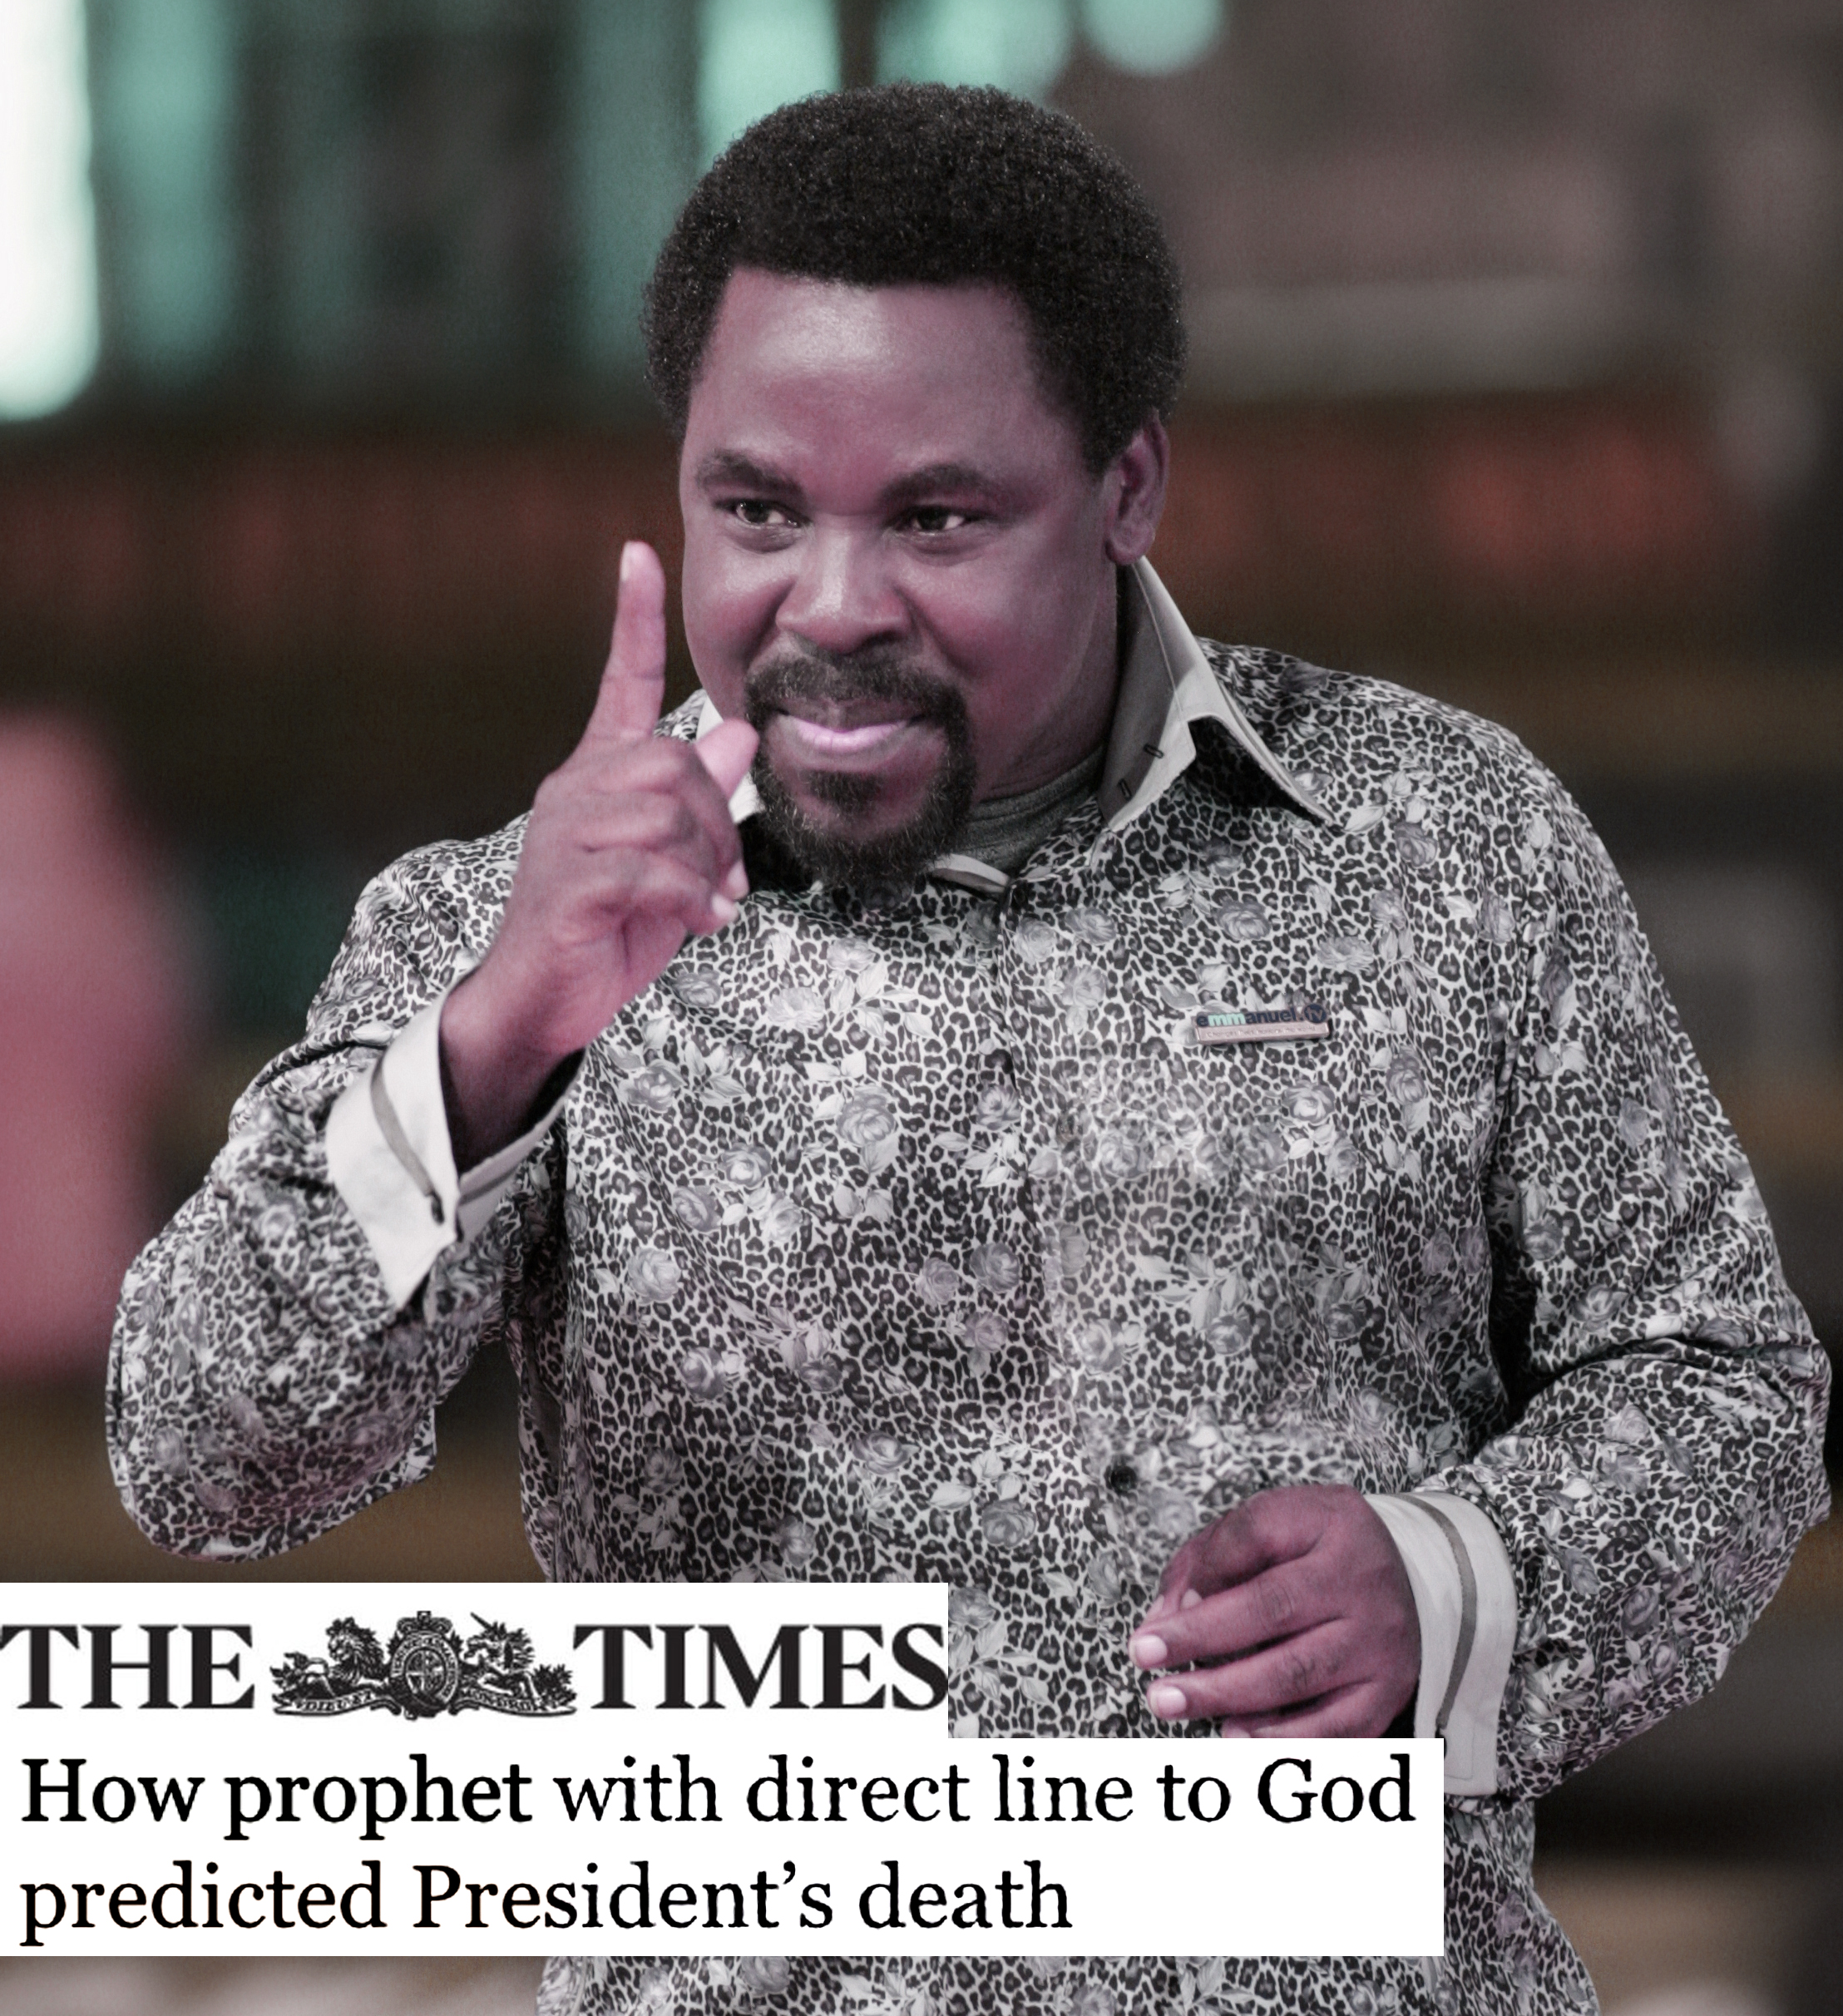 HOW PROPHET WITH DIRECT LINE TO GOD PREDICTED PRESIDENTS DEATH - The